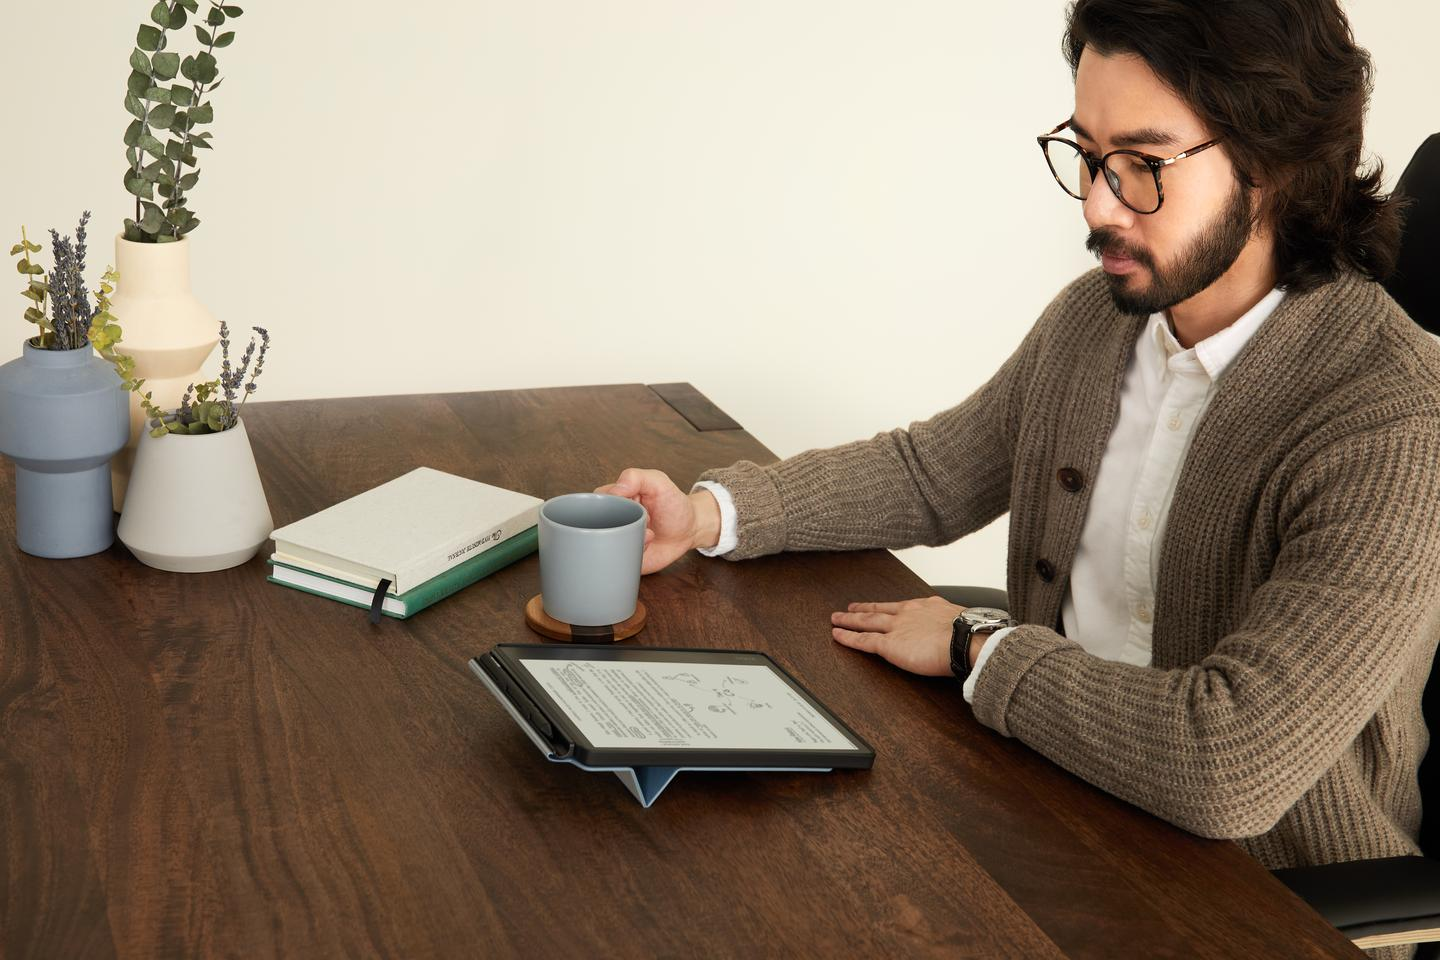 The Elipsa comes with a cover that also holds the stylus when not in use and serves as a stand for more comfortable reading